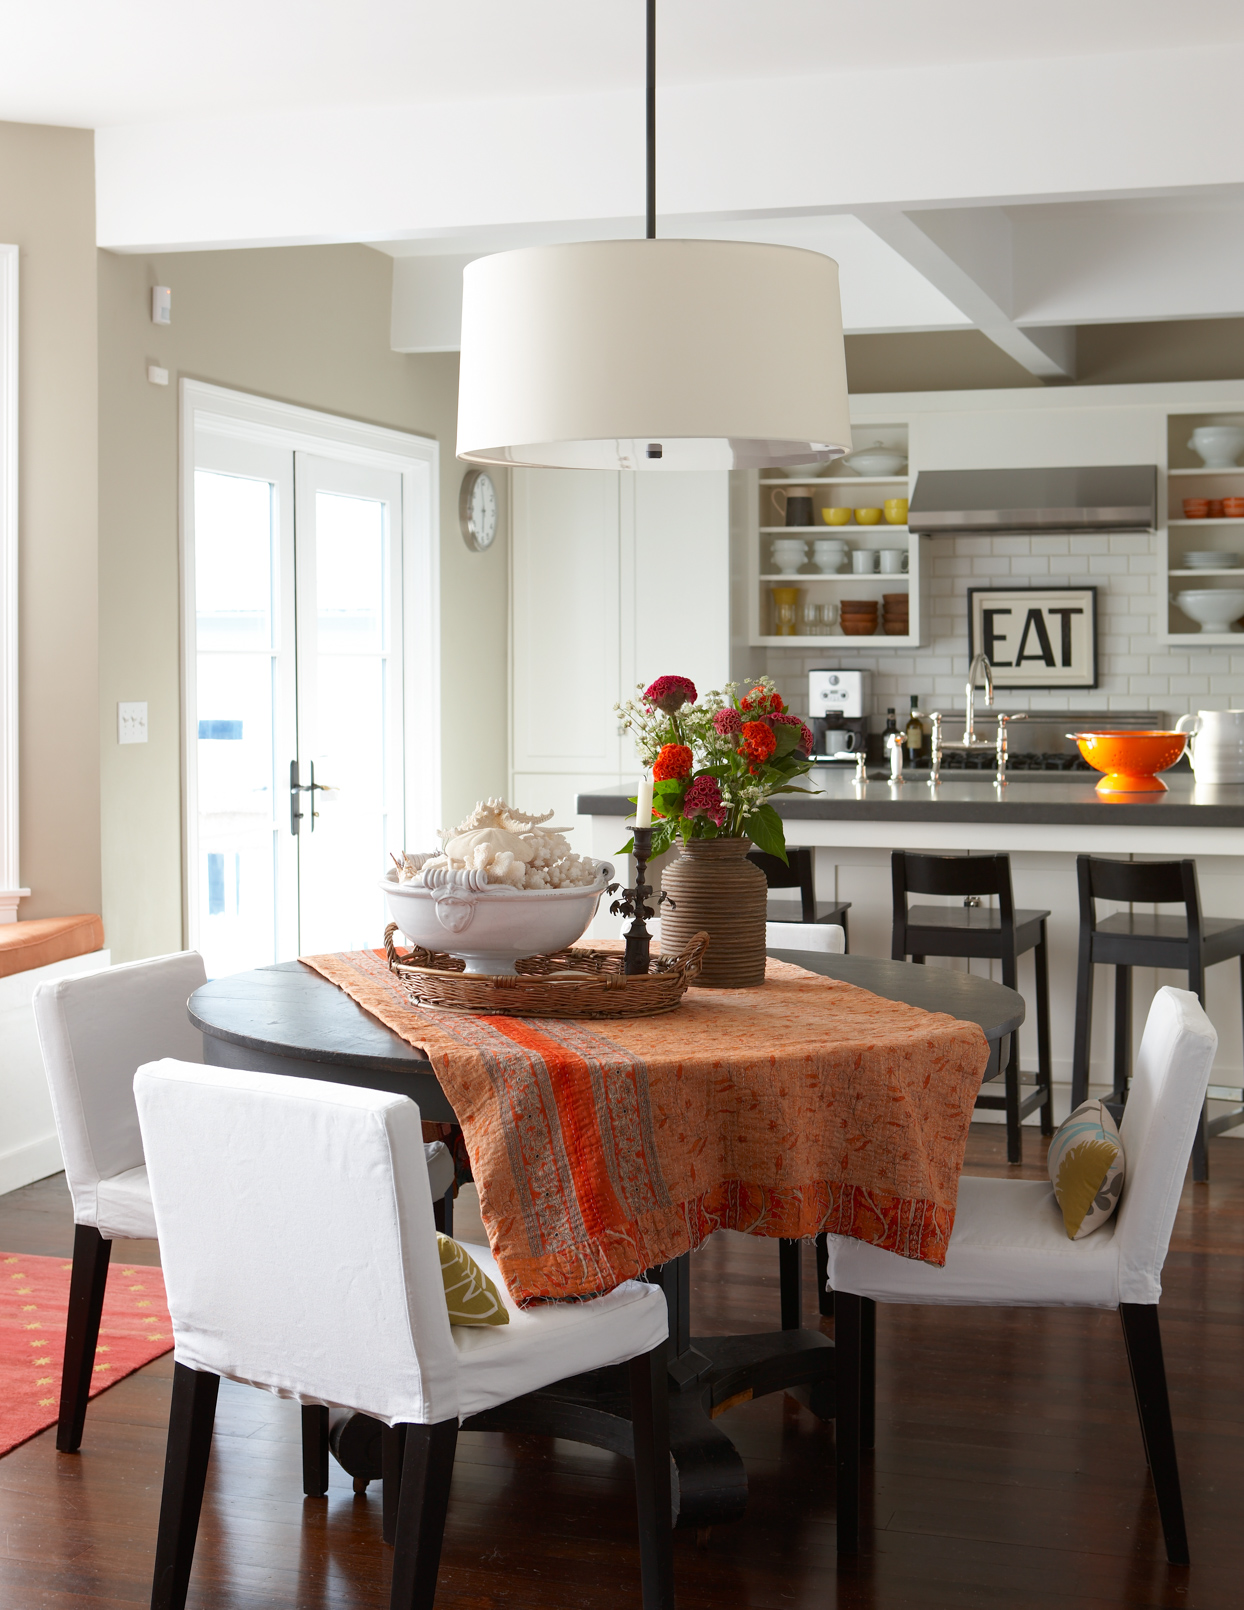 dining kitchen chairs table cloth